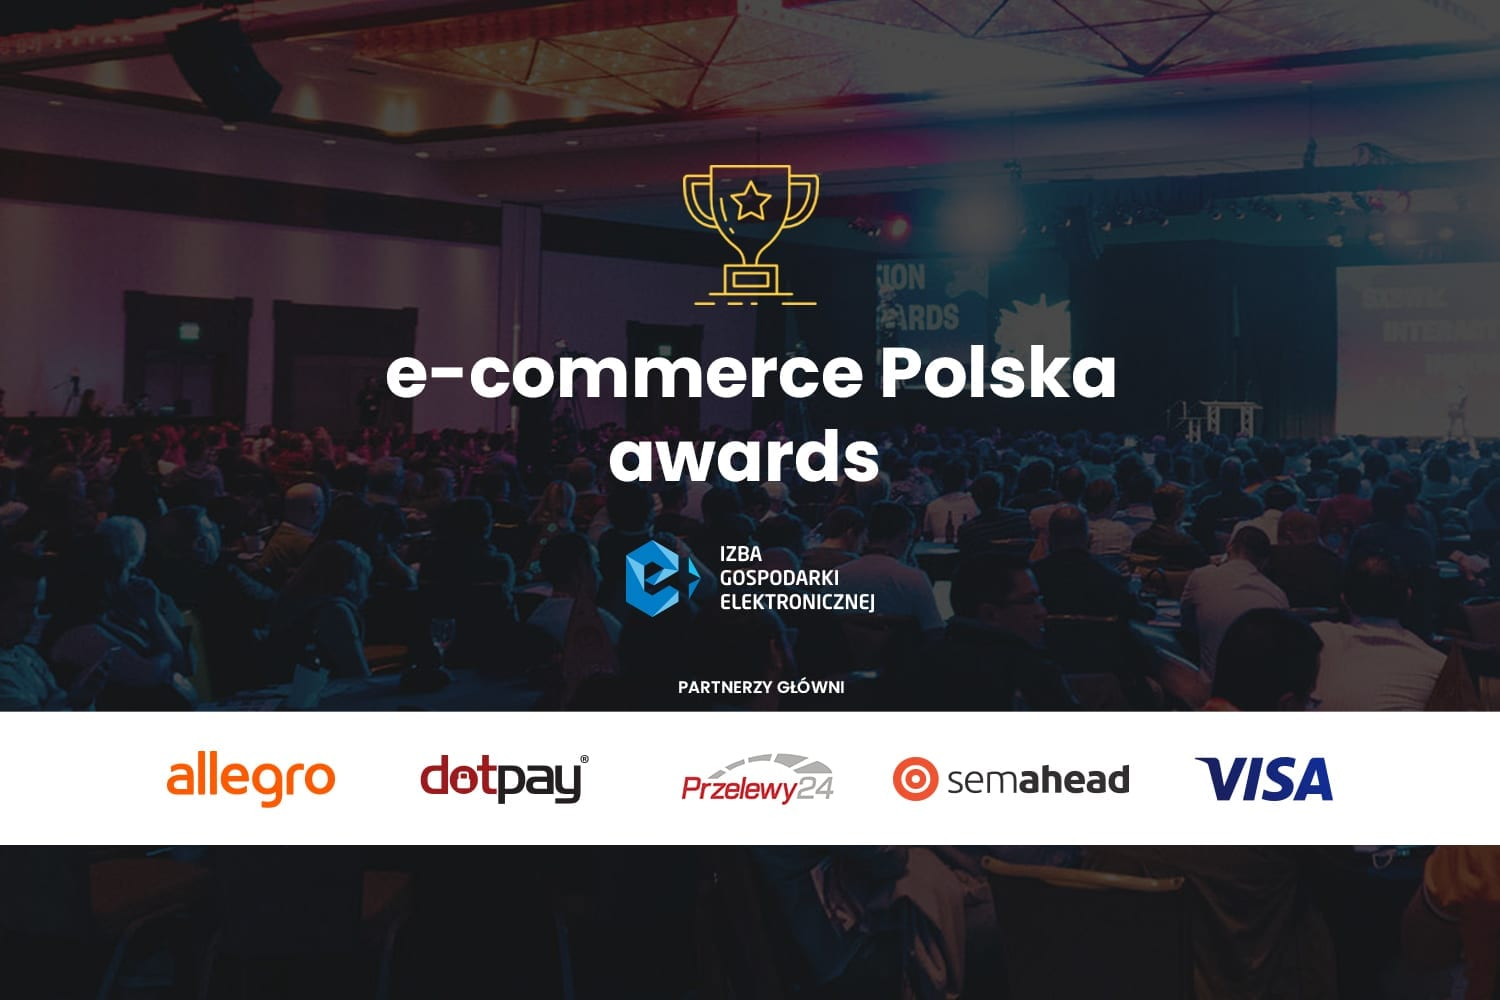 Laureaci Konkursu e-Commerce Polska awards 2018